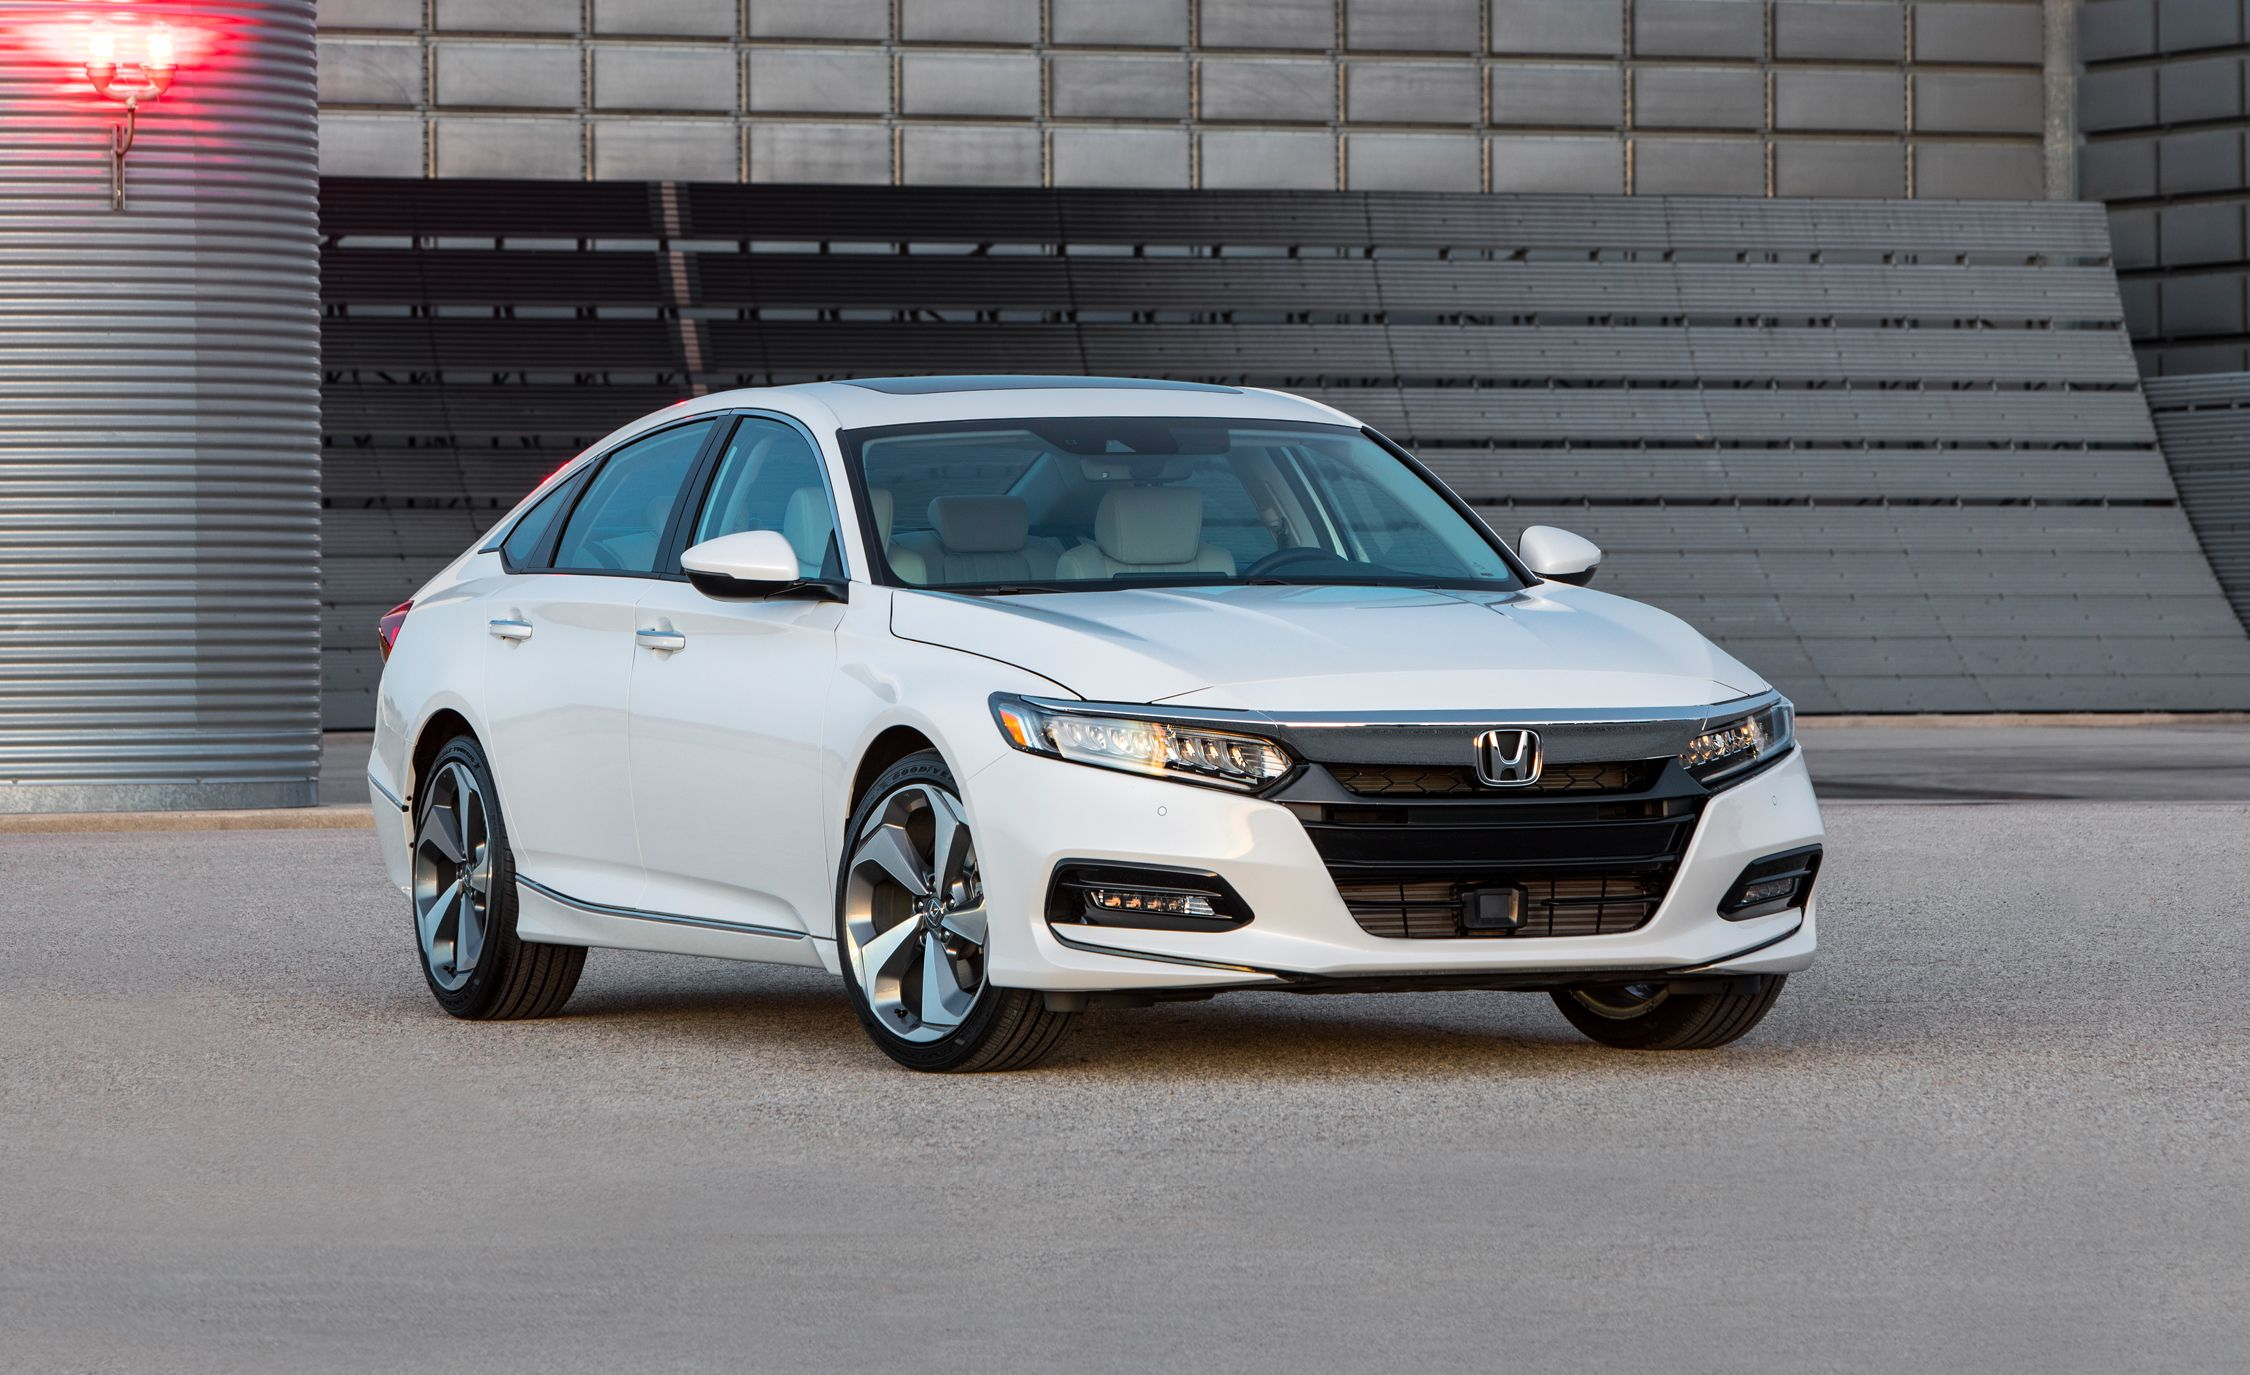 2018 honda accord officially revealed news car and driver photo s original